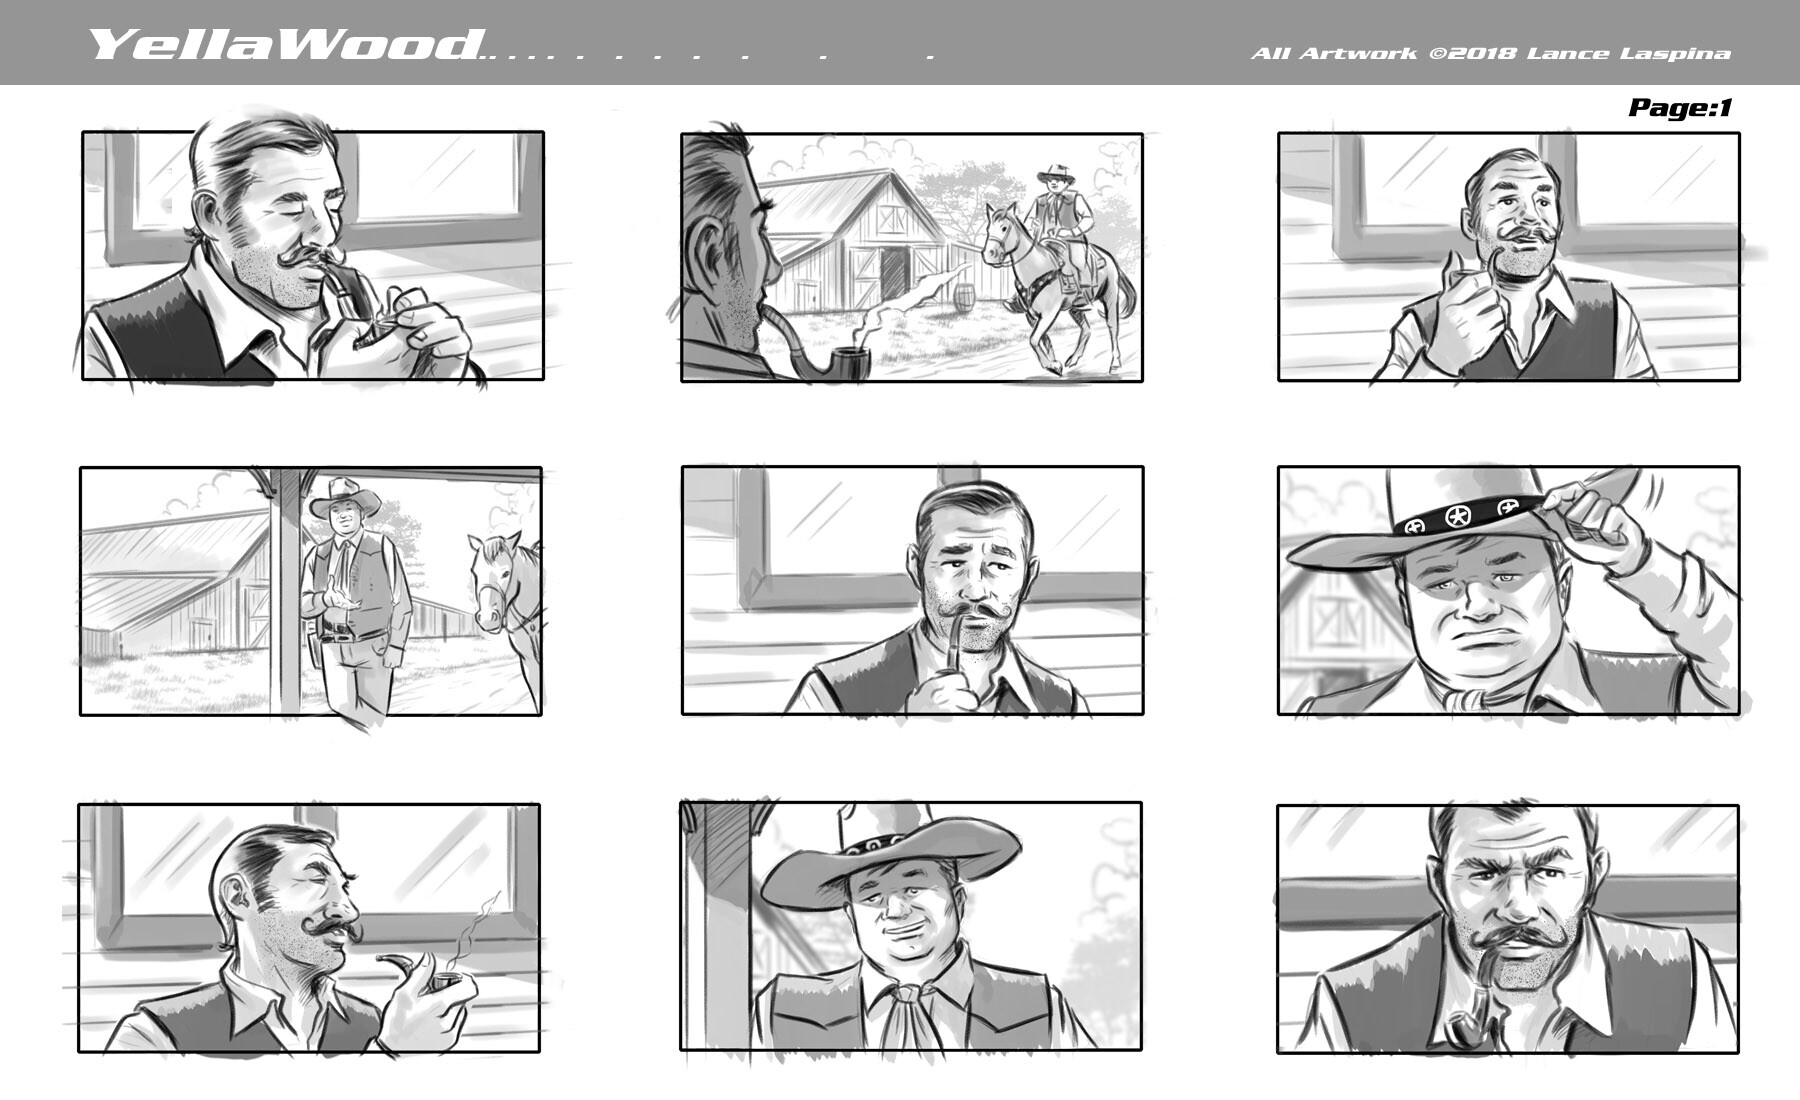 Lance laspina as storyboardsamples 04